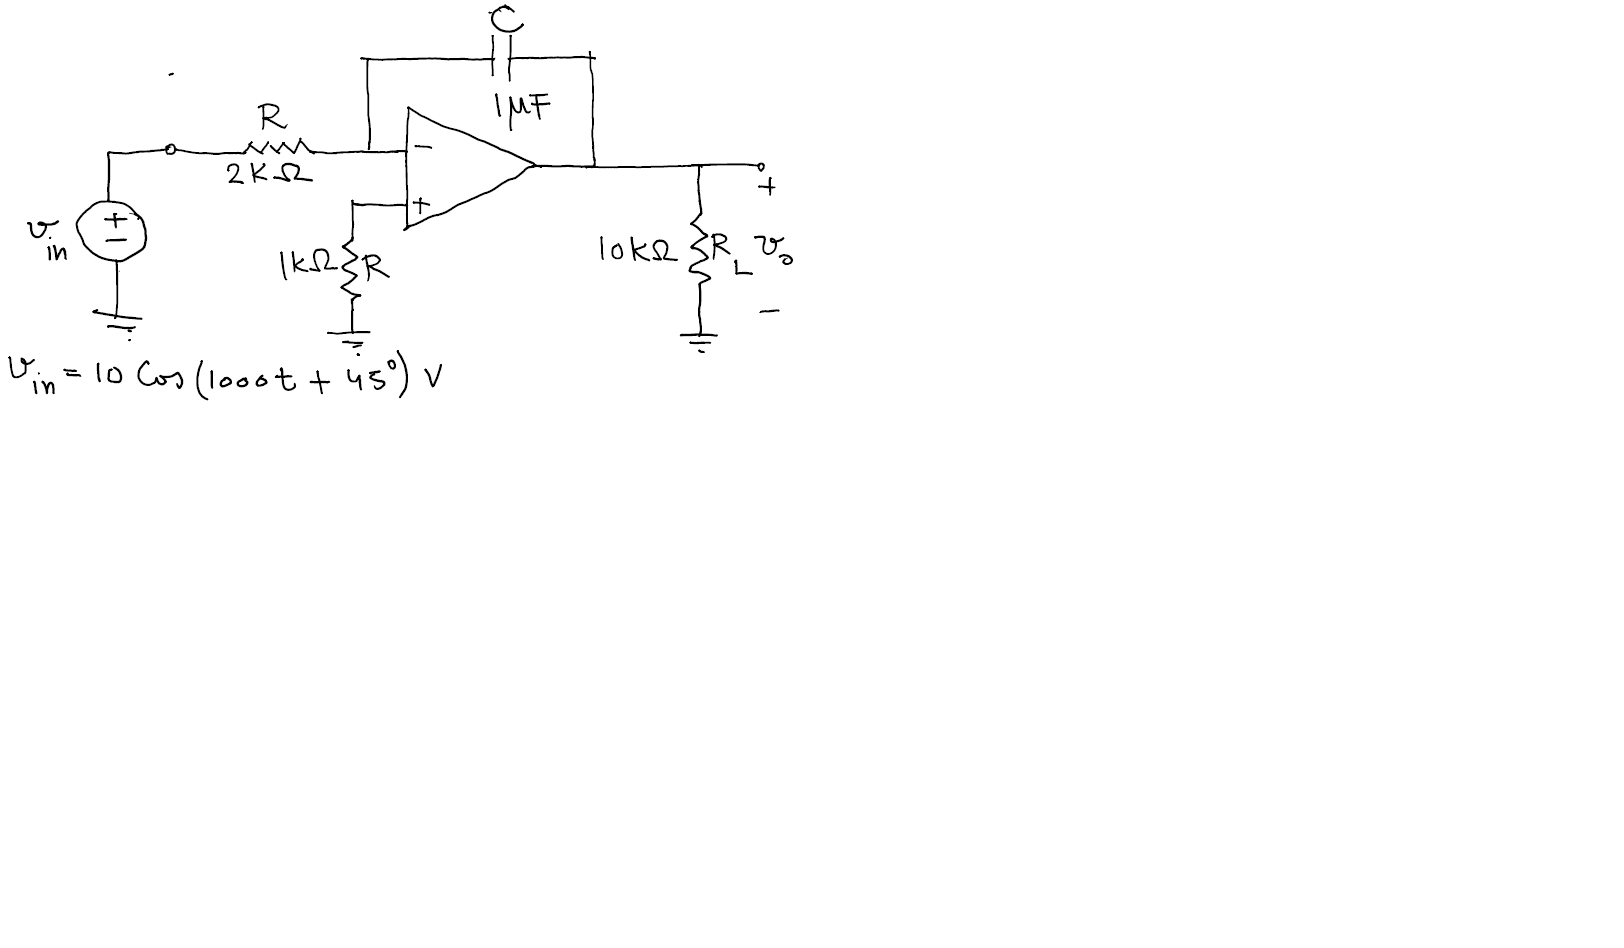 Determine steady state vo(t). The op amp is ideal.